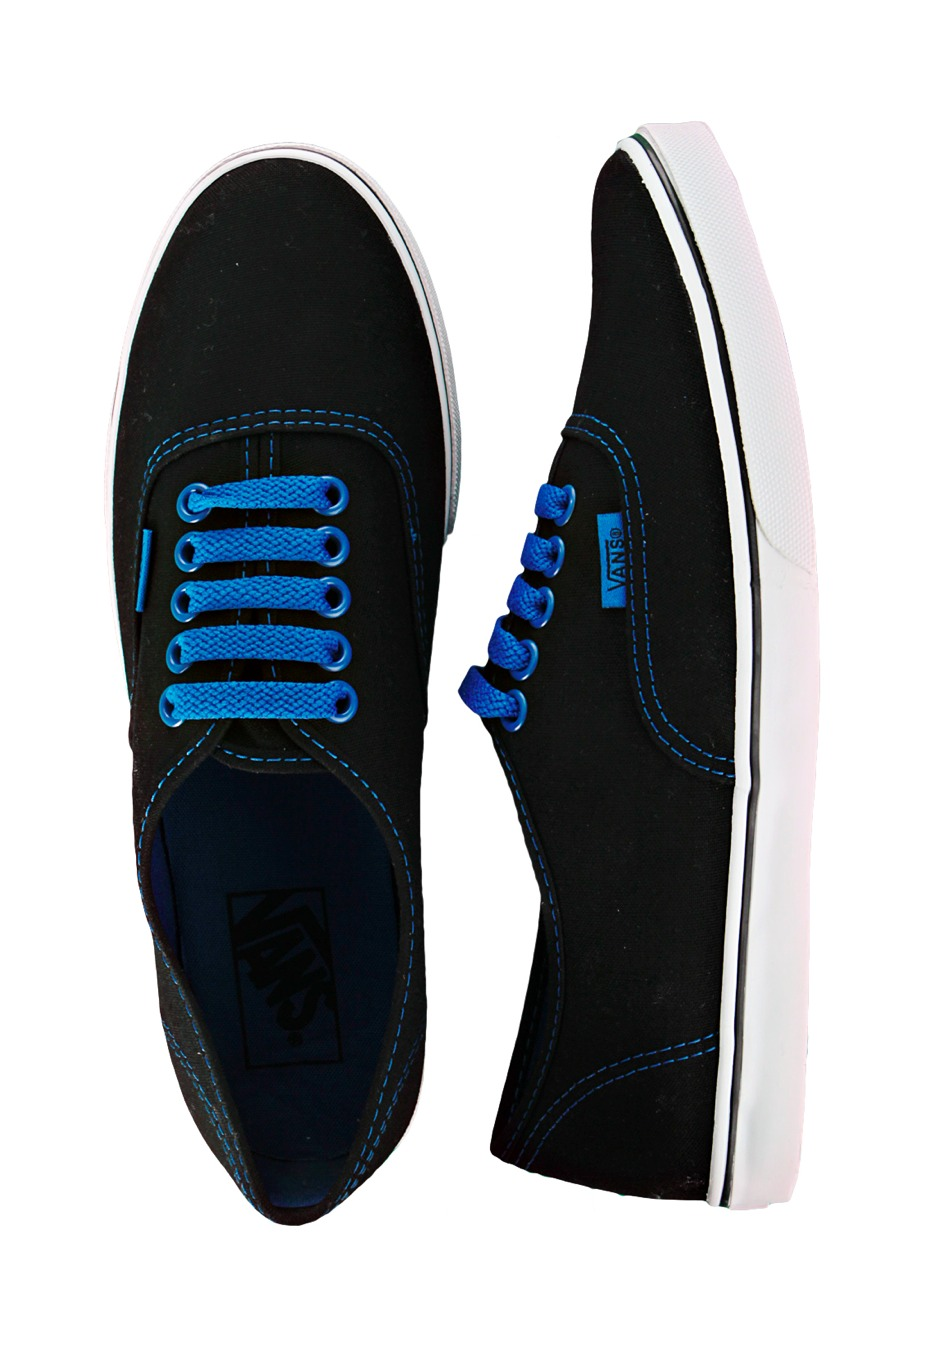 vans shoes for girls black and blue sportscafeennu